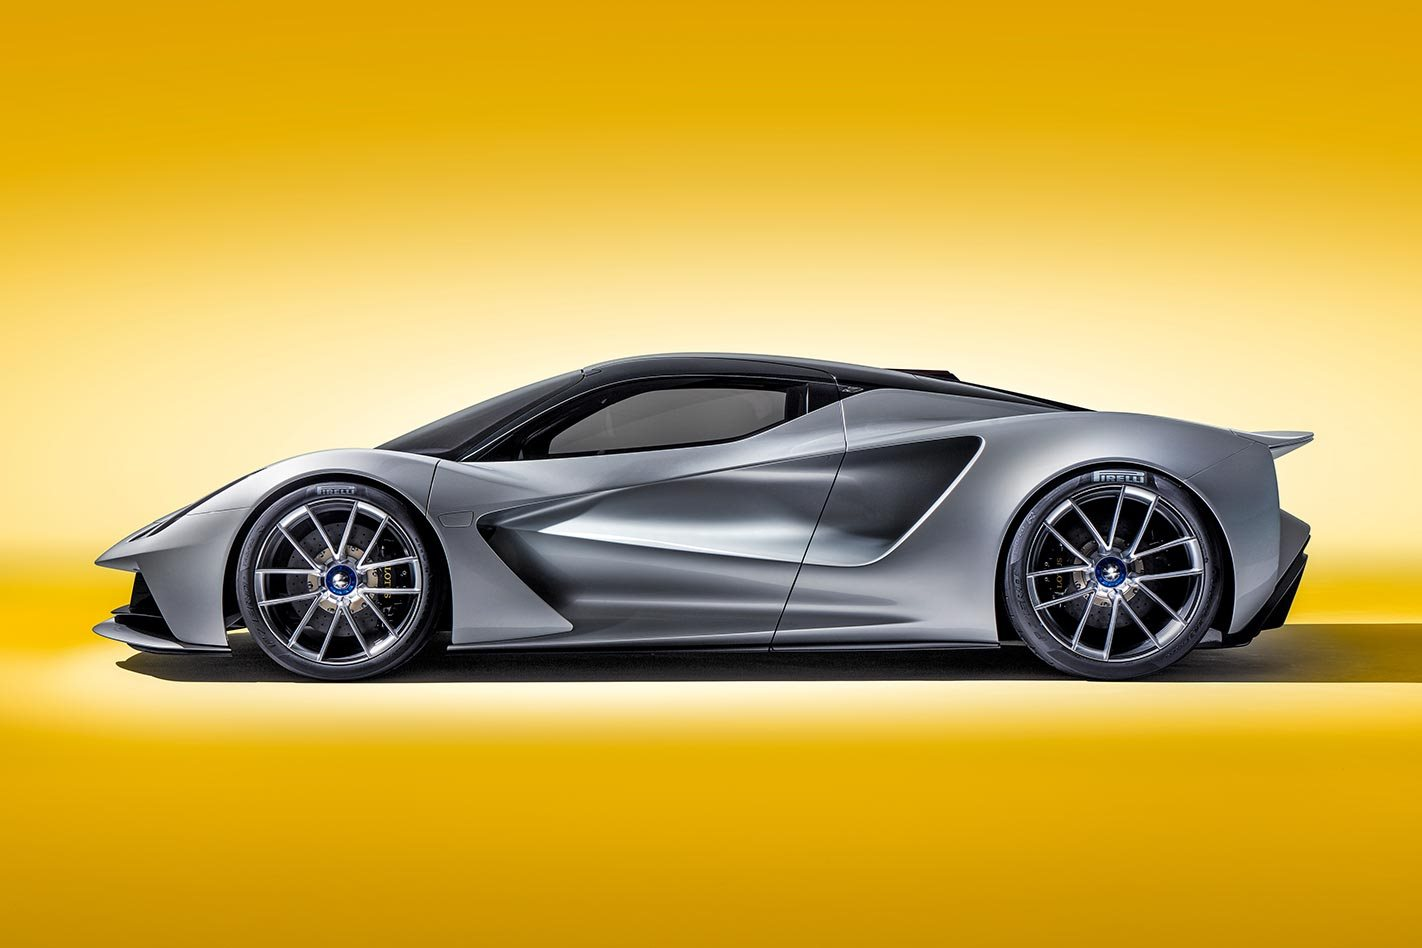 Opinion: What comes after supercars and hypercars?